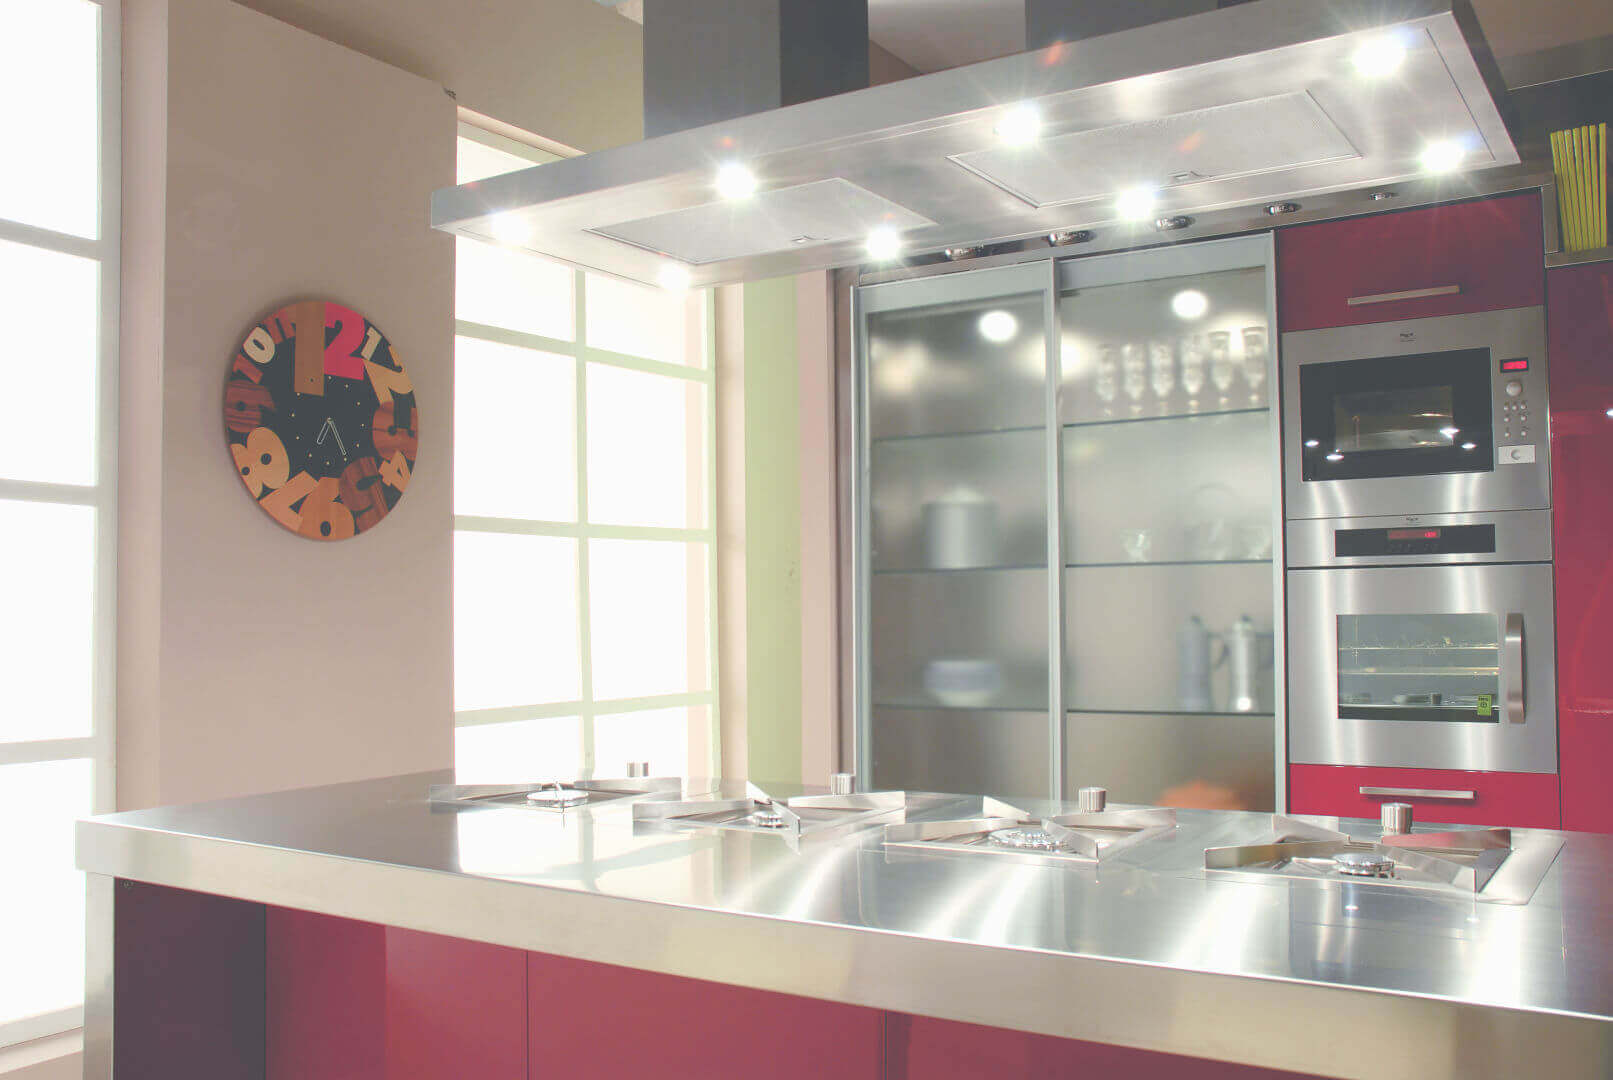 Arca Cucine Italy - Kitchen maid in Stainless Steel and Glass - Opera - Island with Fireworks